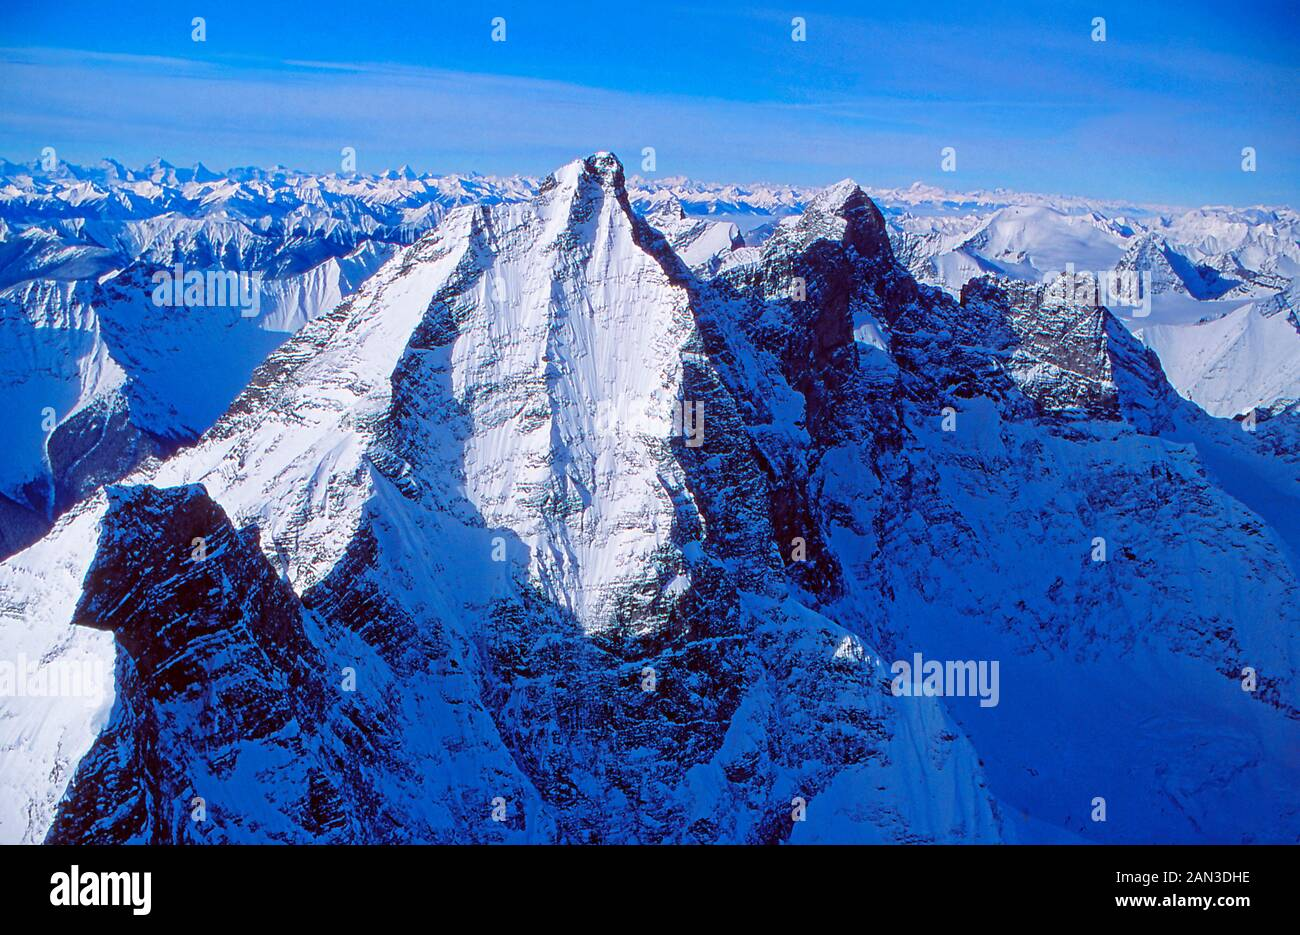 Aerial view of the Canadian Rocky Mountains near southern Alberta and British Columbia, Canada Stock Photo